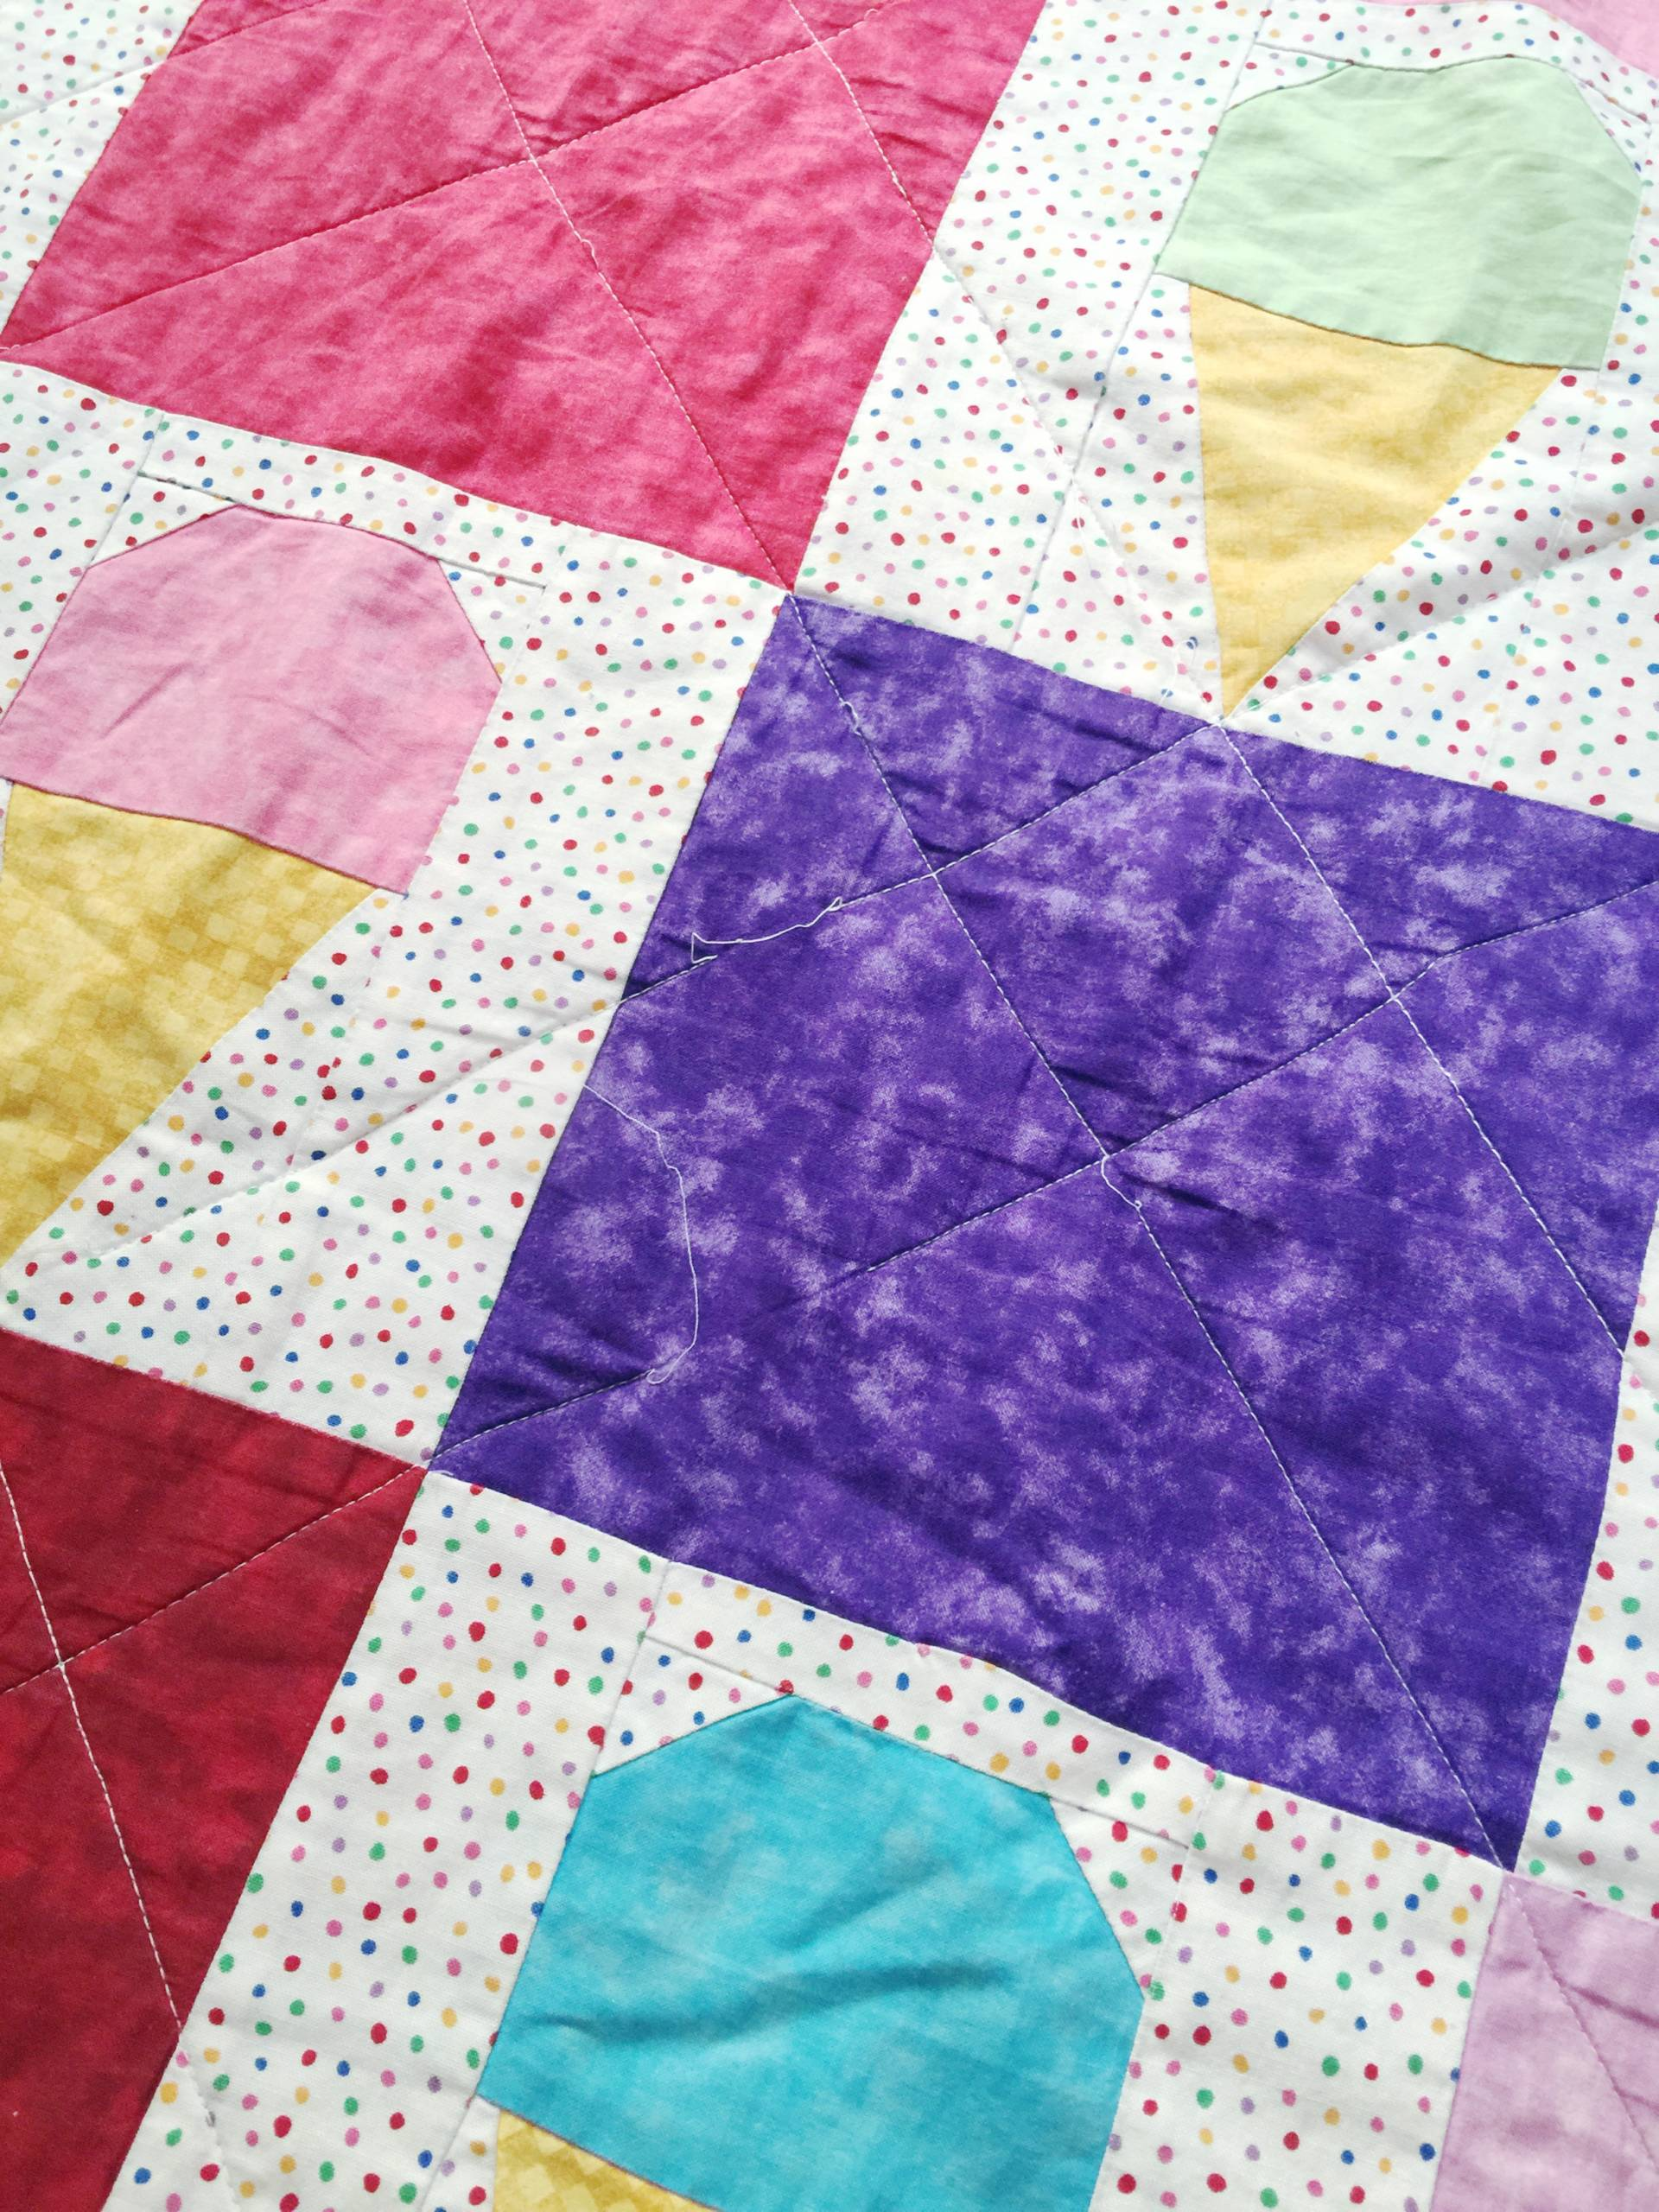 This 10-year old quilt might need some restitching